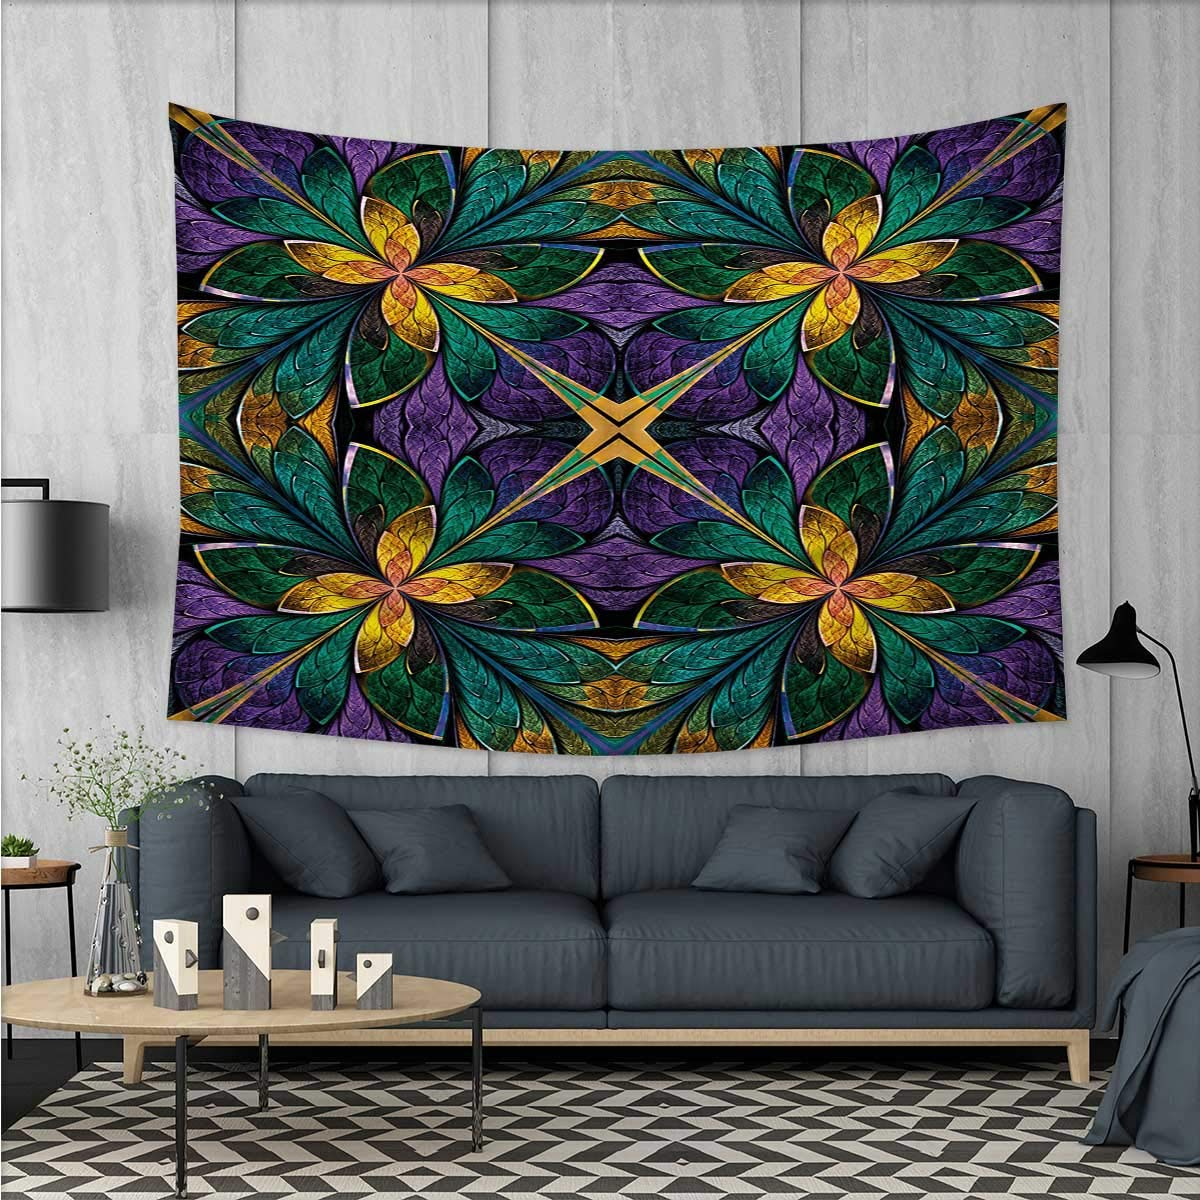 Fractal Customed Widened Tapestry Antique Ornate Symmetric Stained Glass Mosaic Window Style Floral Tile Pattern Wall Hanging Tapestry 90''x60'' Green Purple